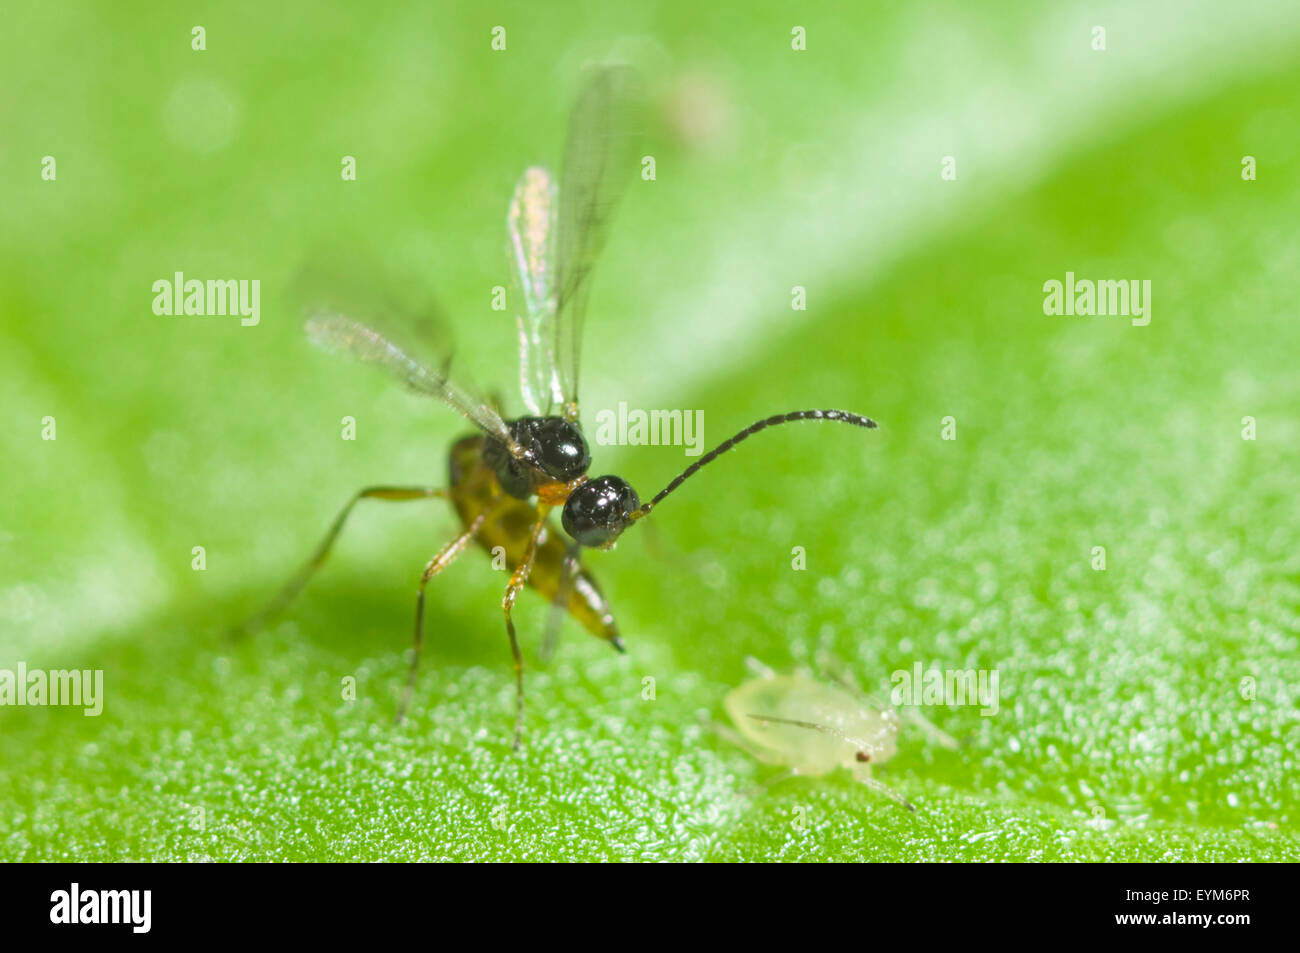 Parasitic wasp about to sting an aphid - Stock Image